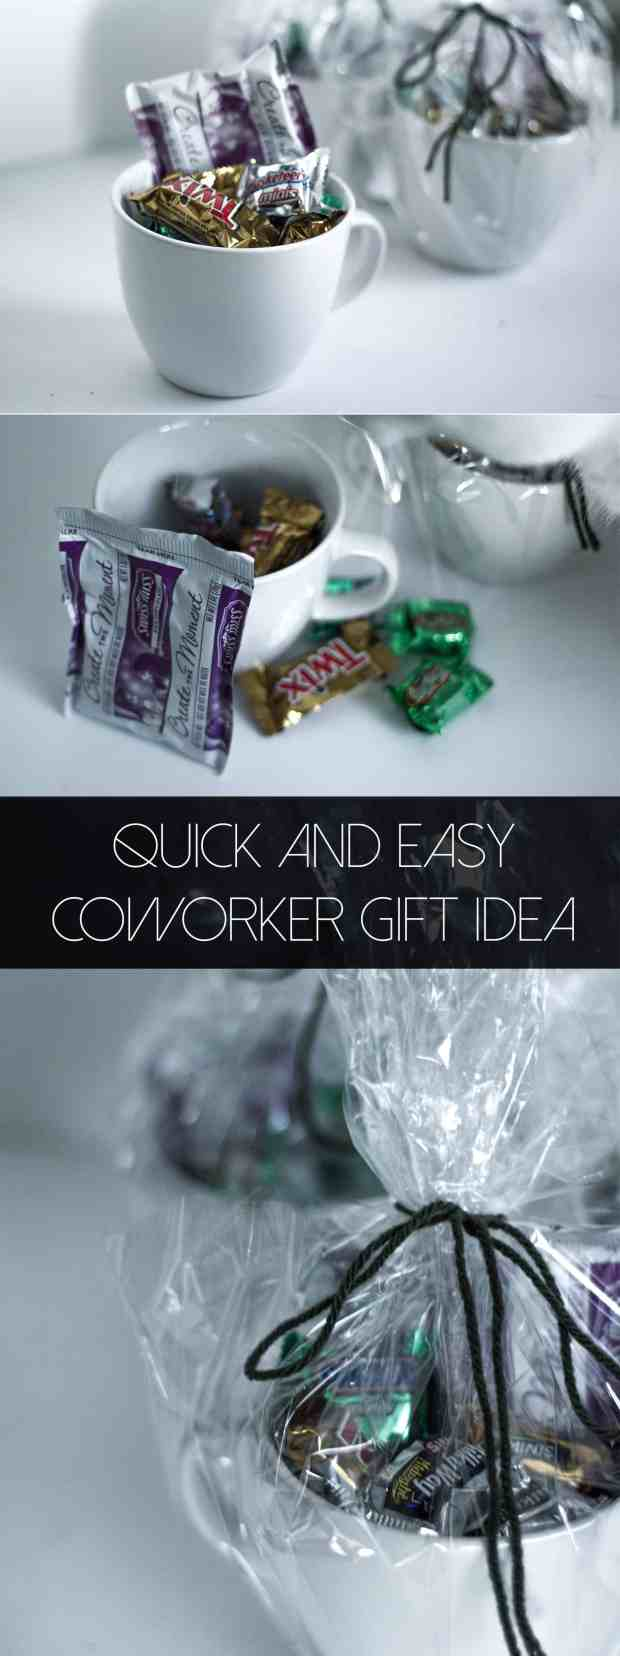 Quick and easy coworker gift idea. For less than $4!